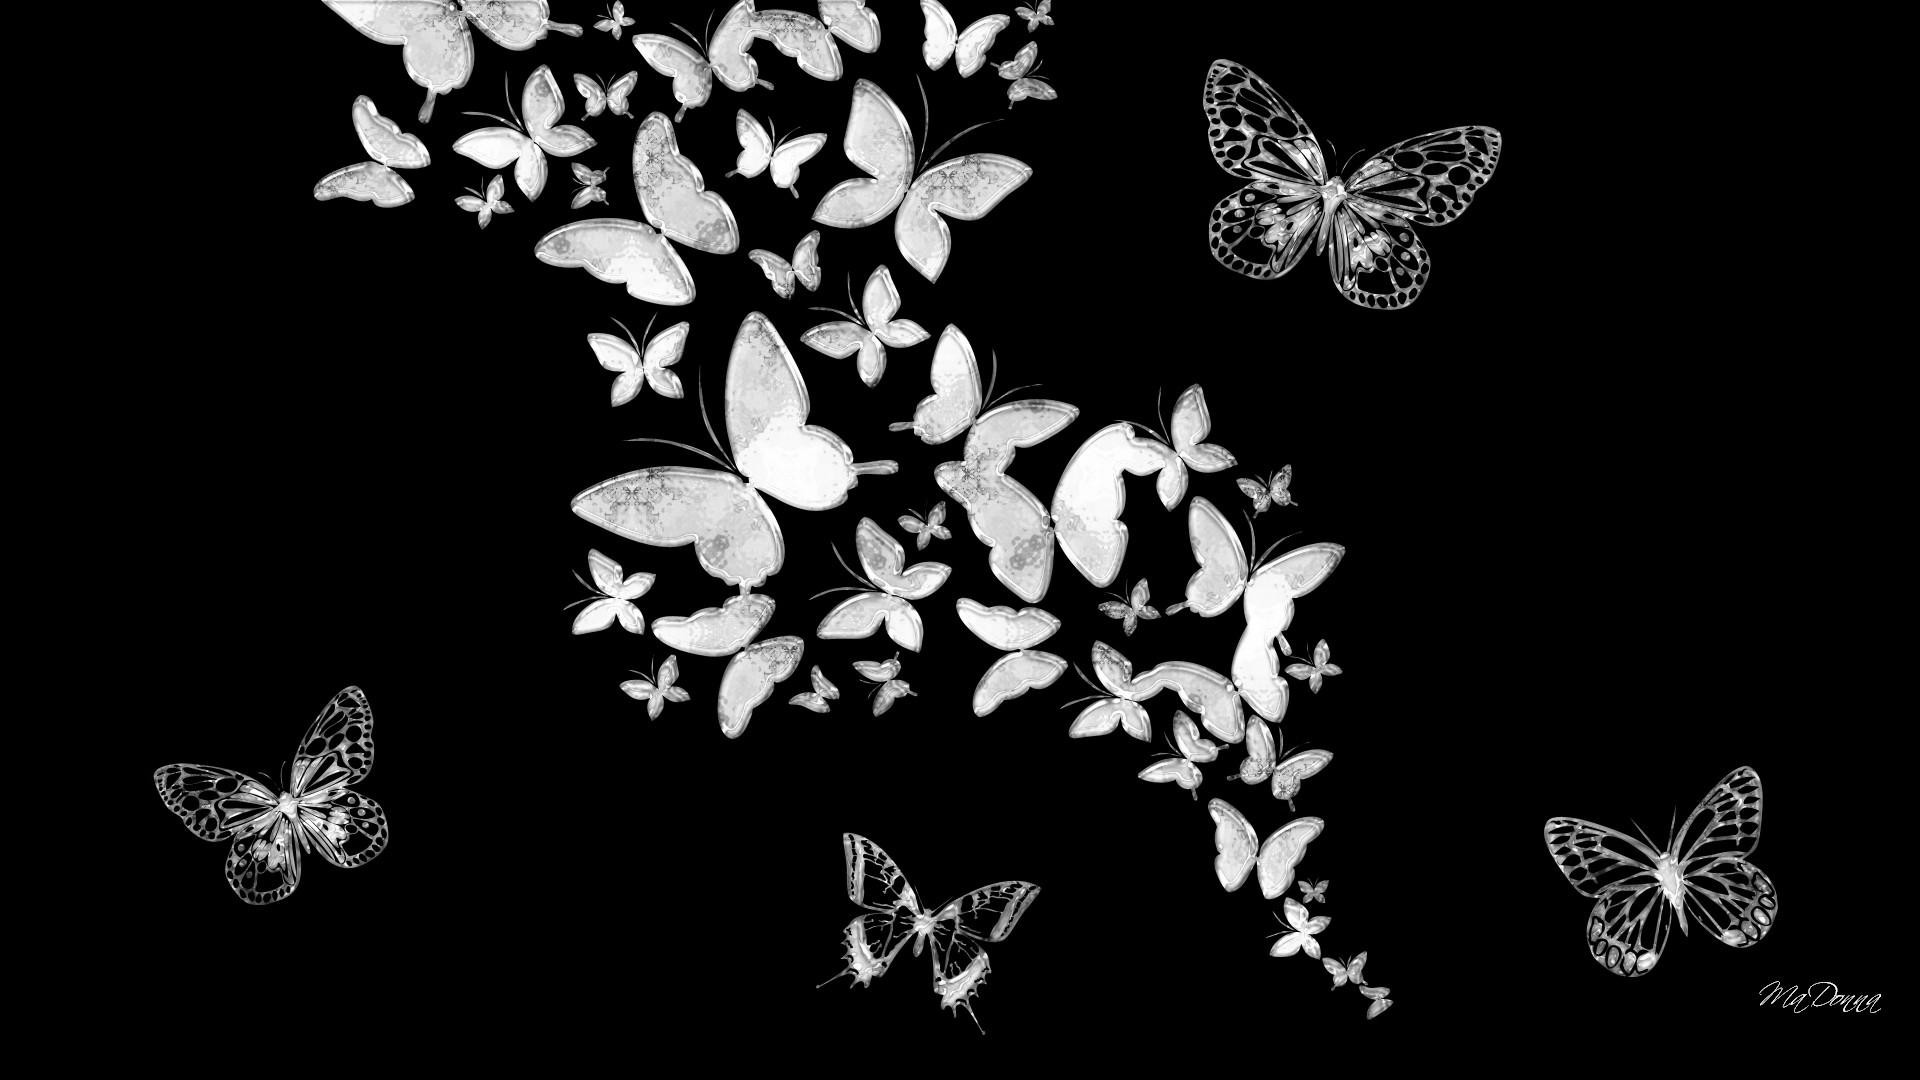 Download Wallpaper A Butterflies Black And White 1920x1080 Wallpaper Teahub Io